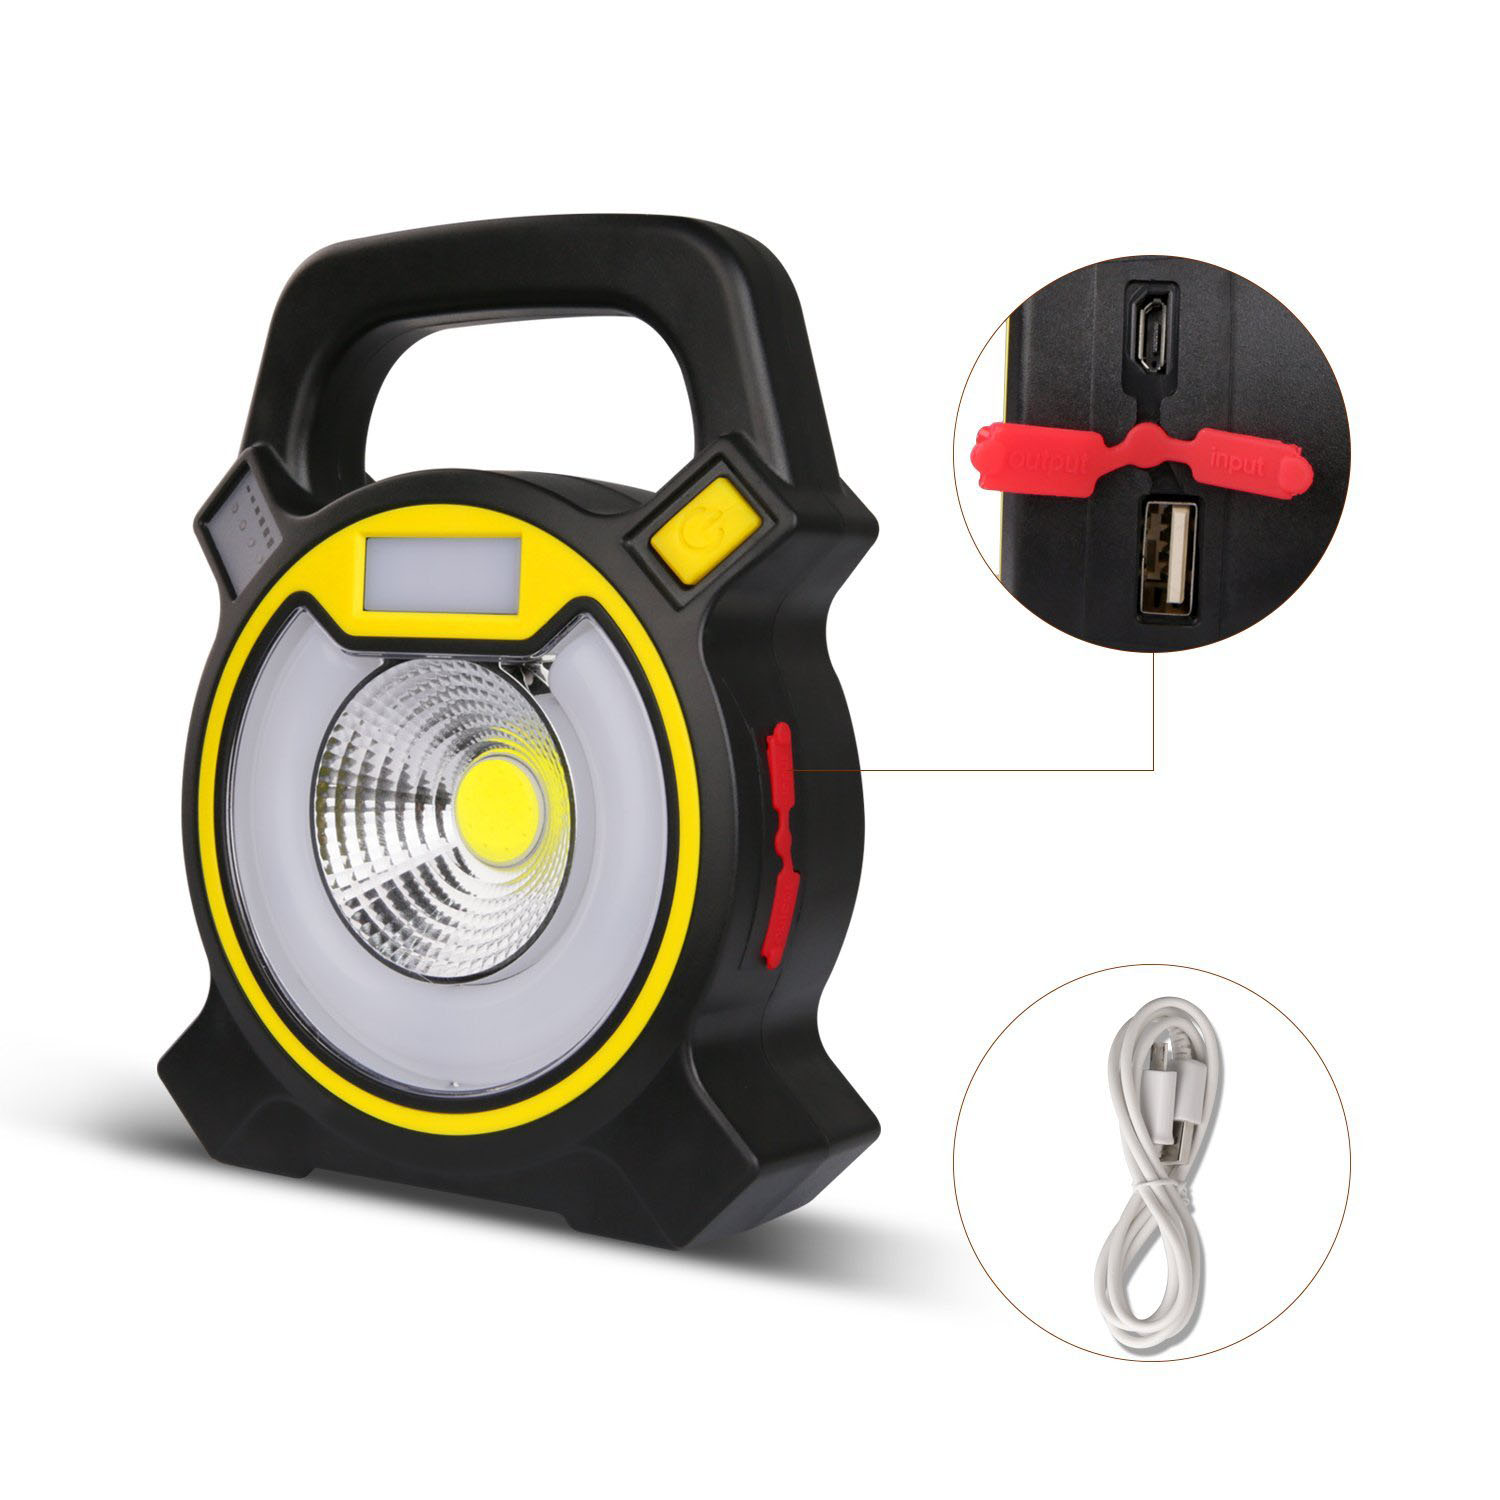 Outdoor Rechargeable USB Powerful COB LED Portable Work Light fishing Floodlight